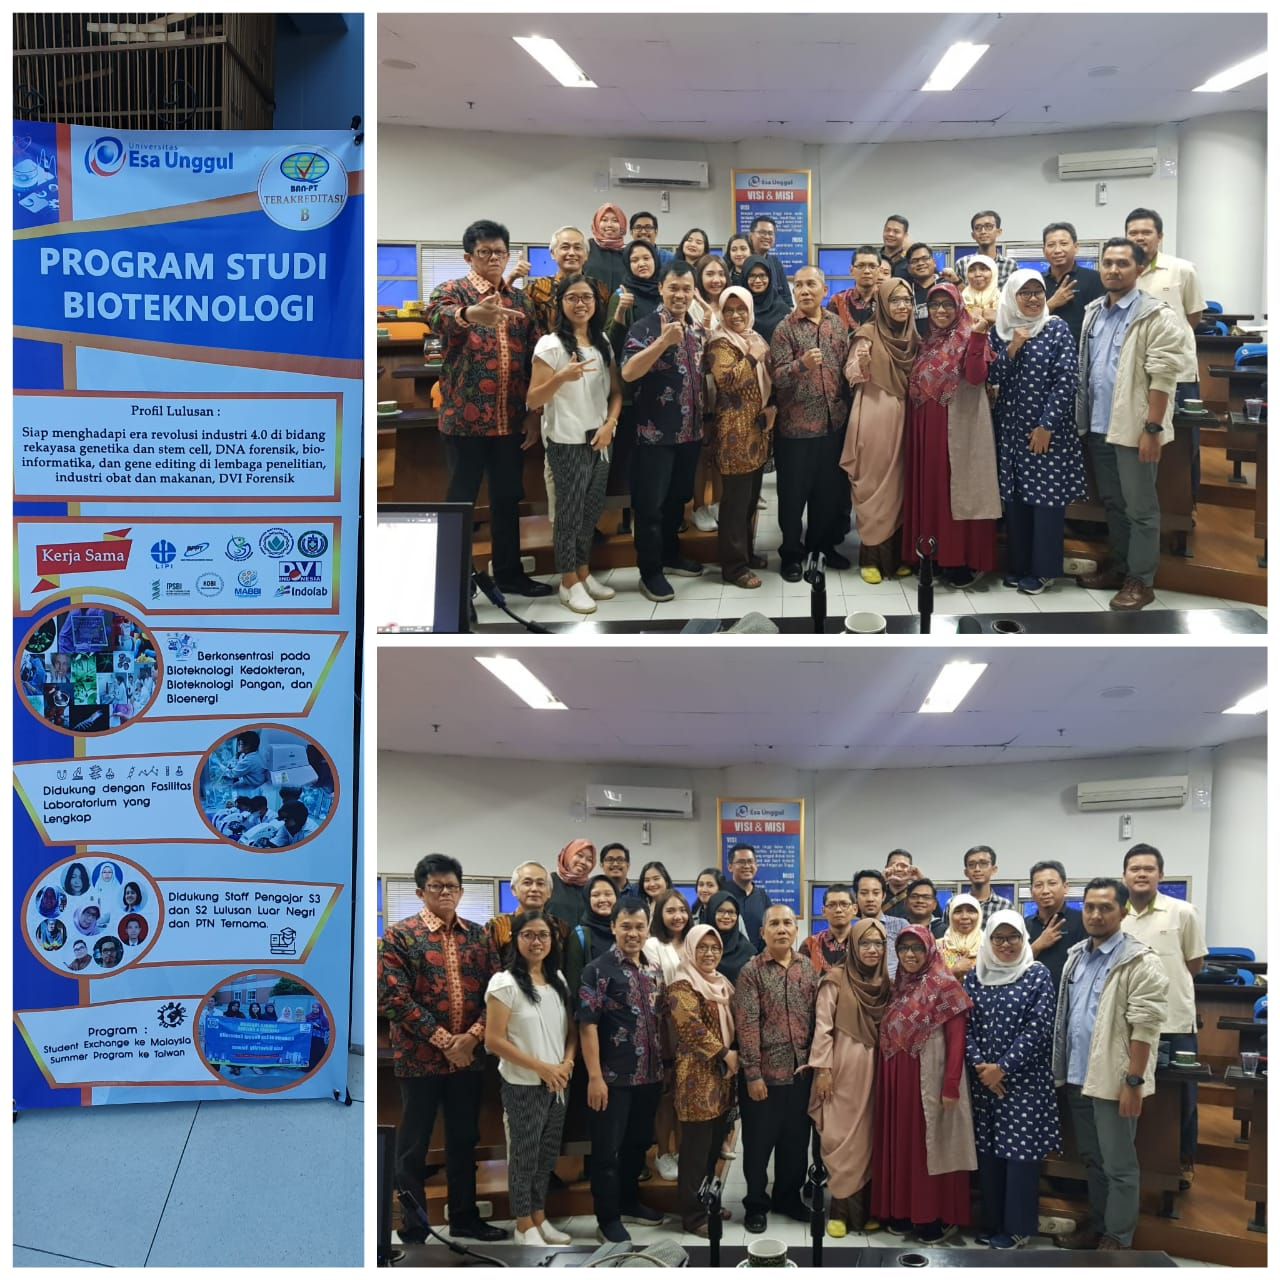 Indonesia Biotechnology Consortium Committee and Members Meeting at Universitas Indonesia Esa Unggul